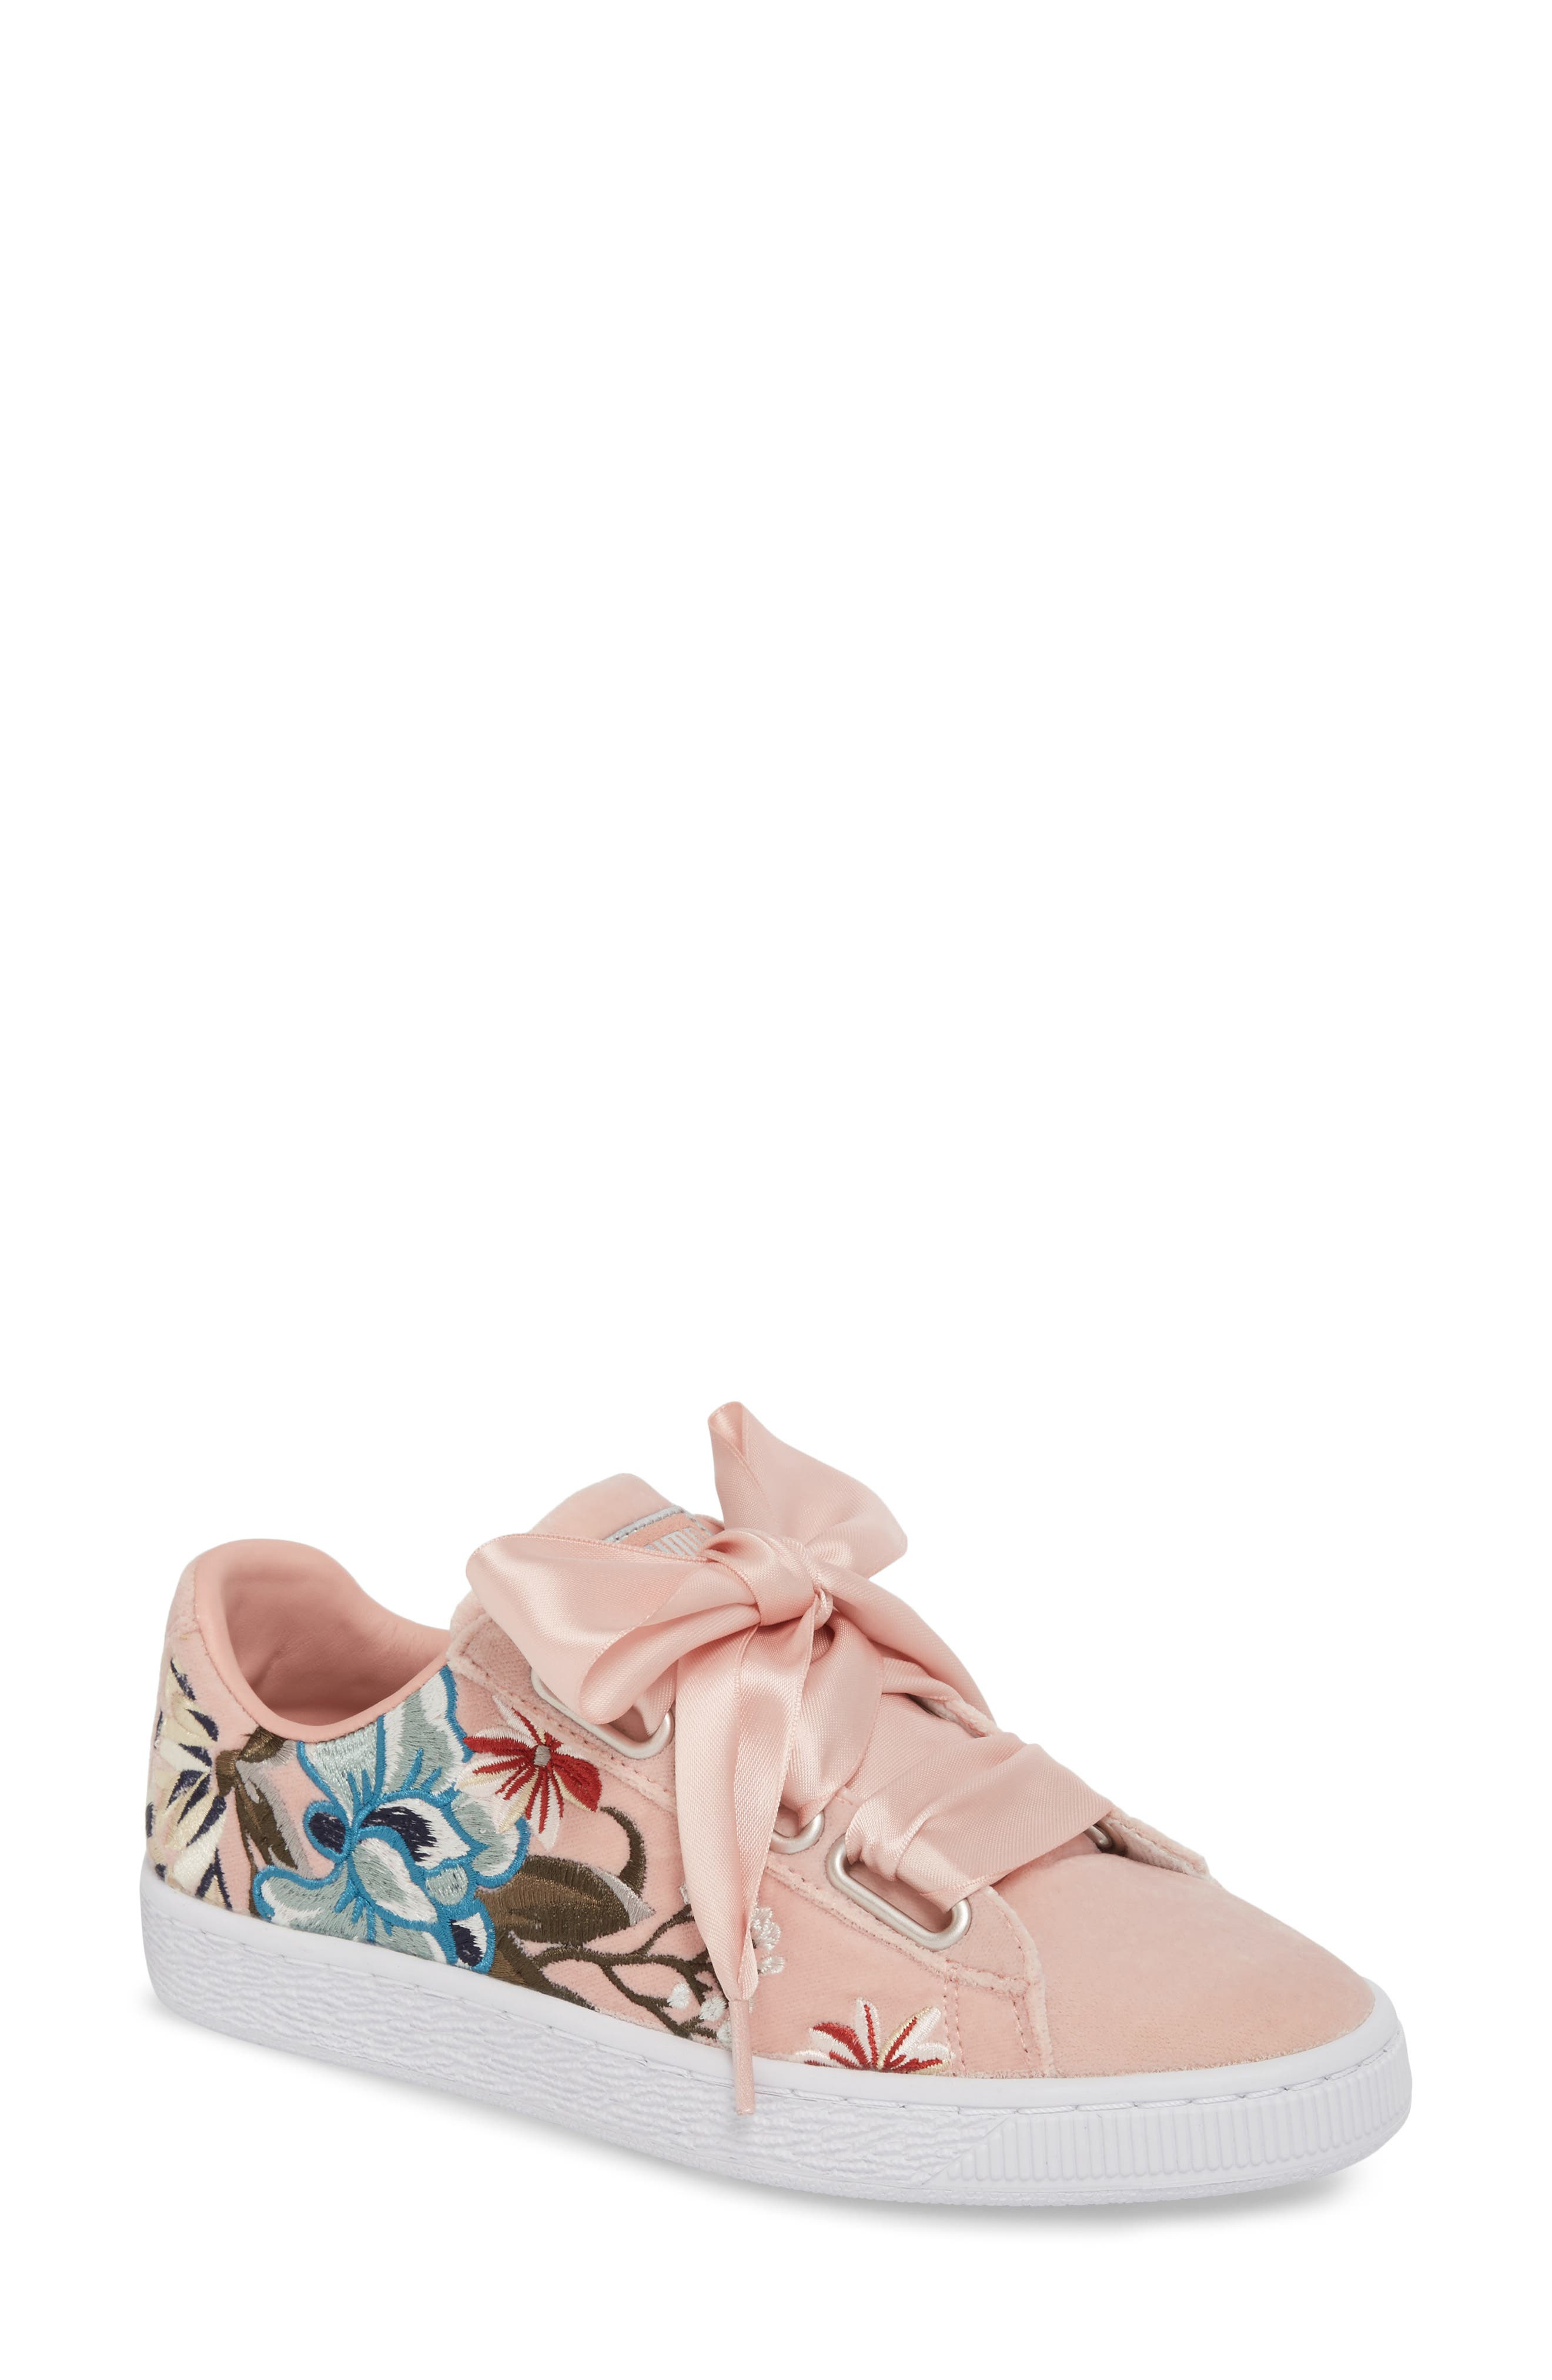 Basket Heart Hyper Embroidered Sneaker,                             Main thumbnail 1, color,                             Peach Beige